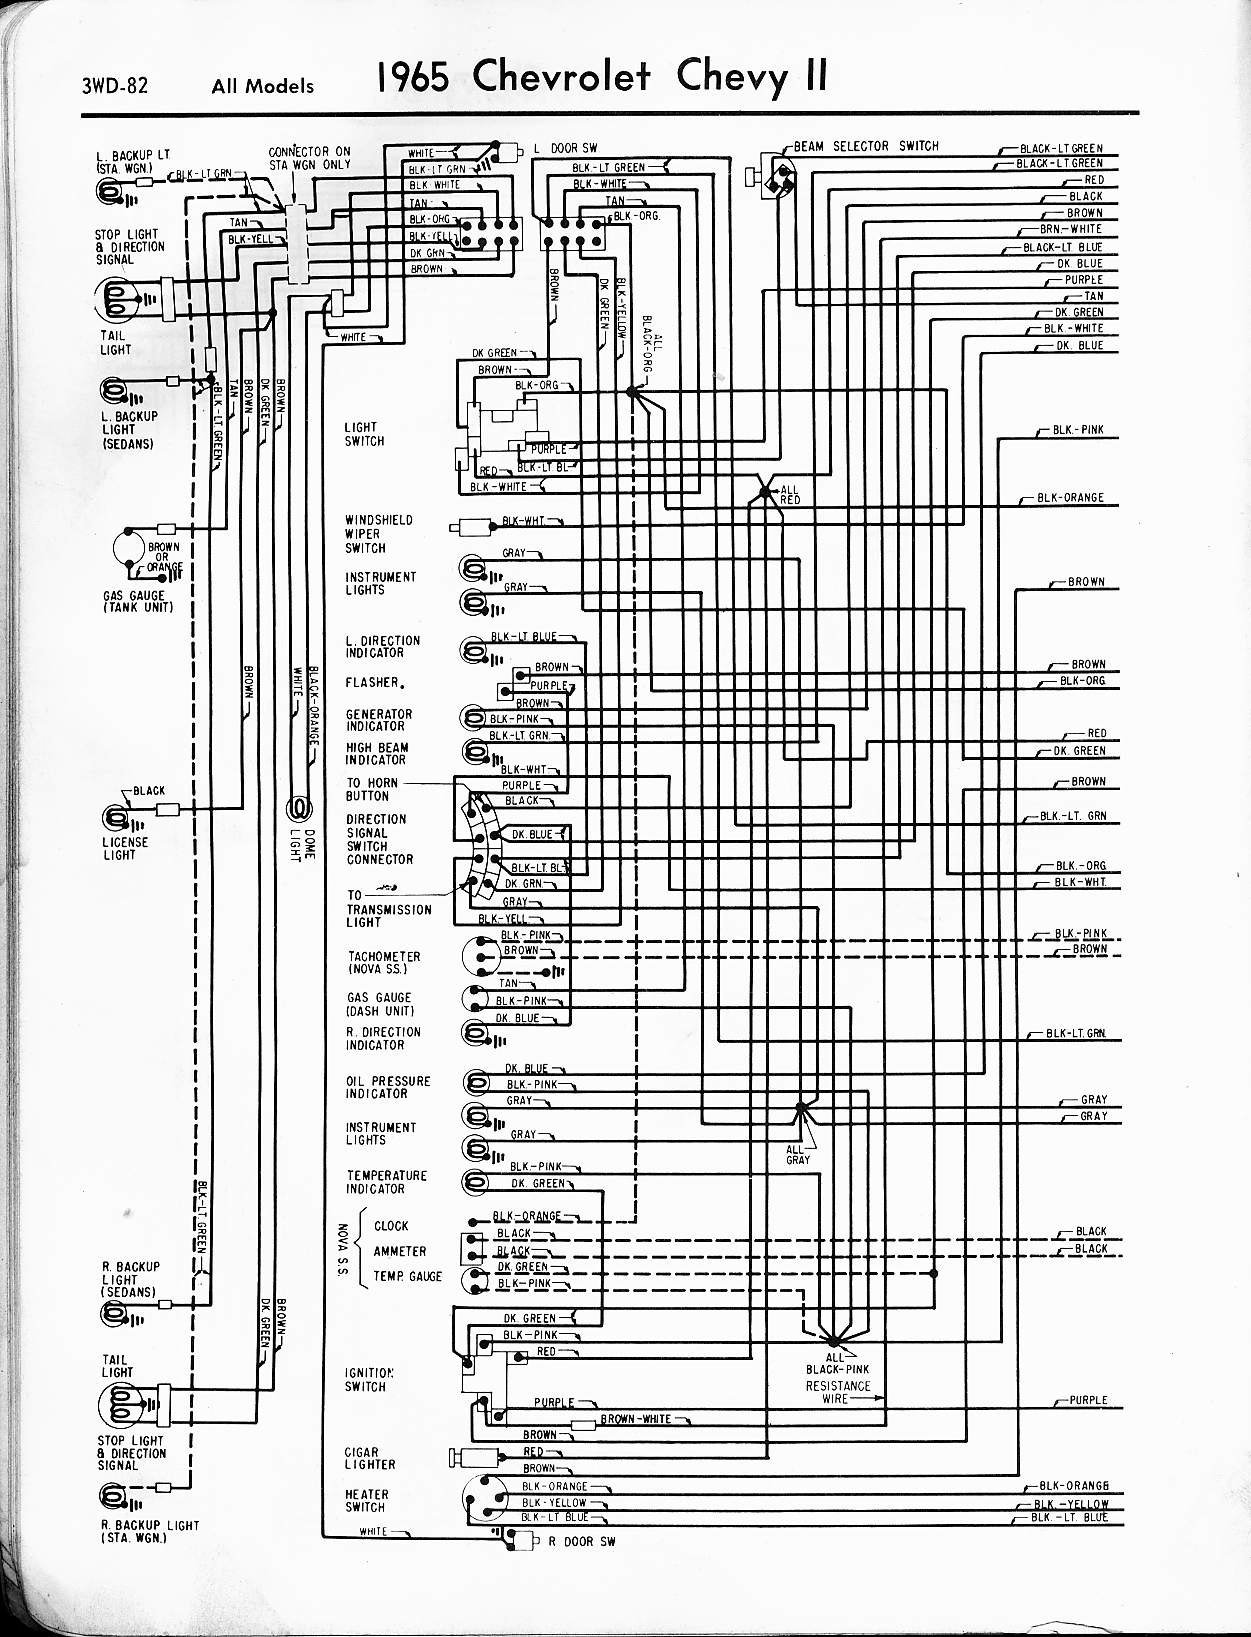 1965 Chevy Chevelle Wiring Diagram - Wiring Diagram •